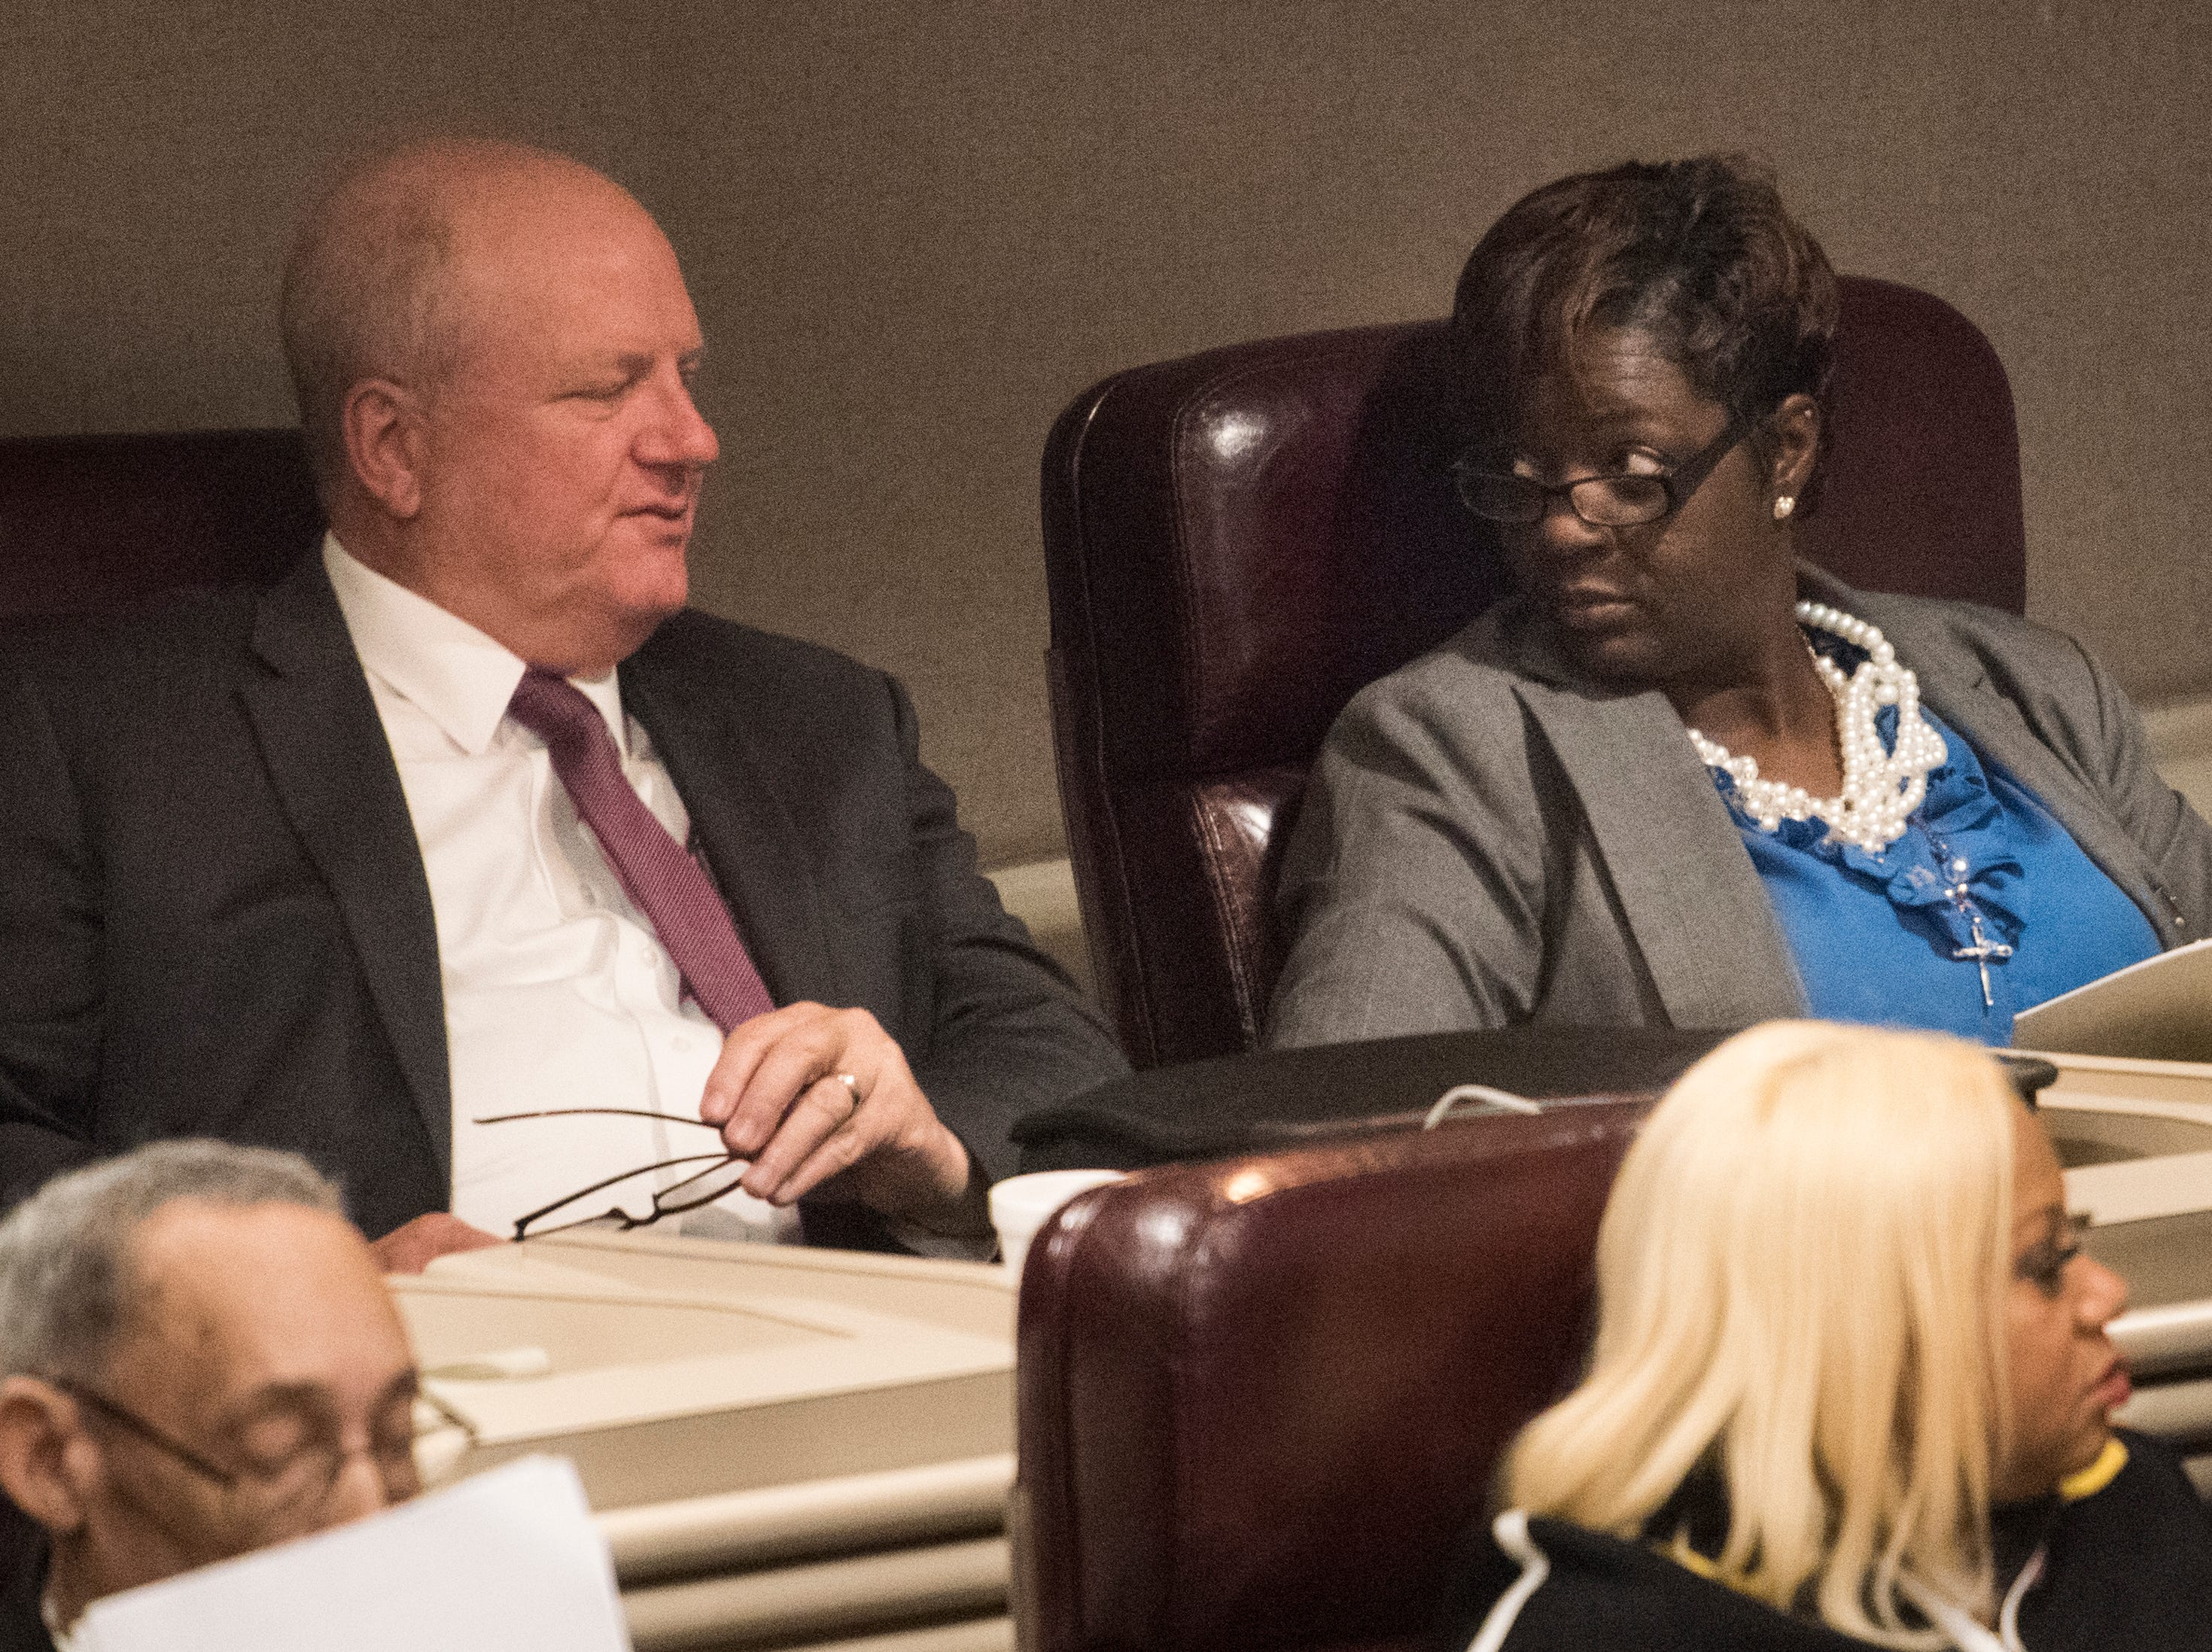 Rep. Tashina Morris, right, during the 2019 Alabama Legislature's organizational session at the Alabama State House in Montgomery, Ala., on Tuesday, Jan. 8, 2019.